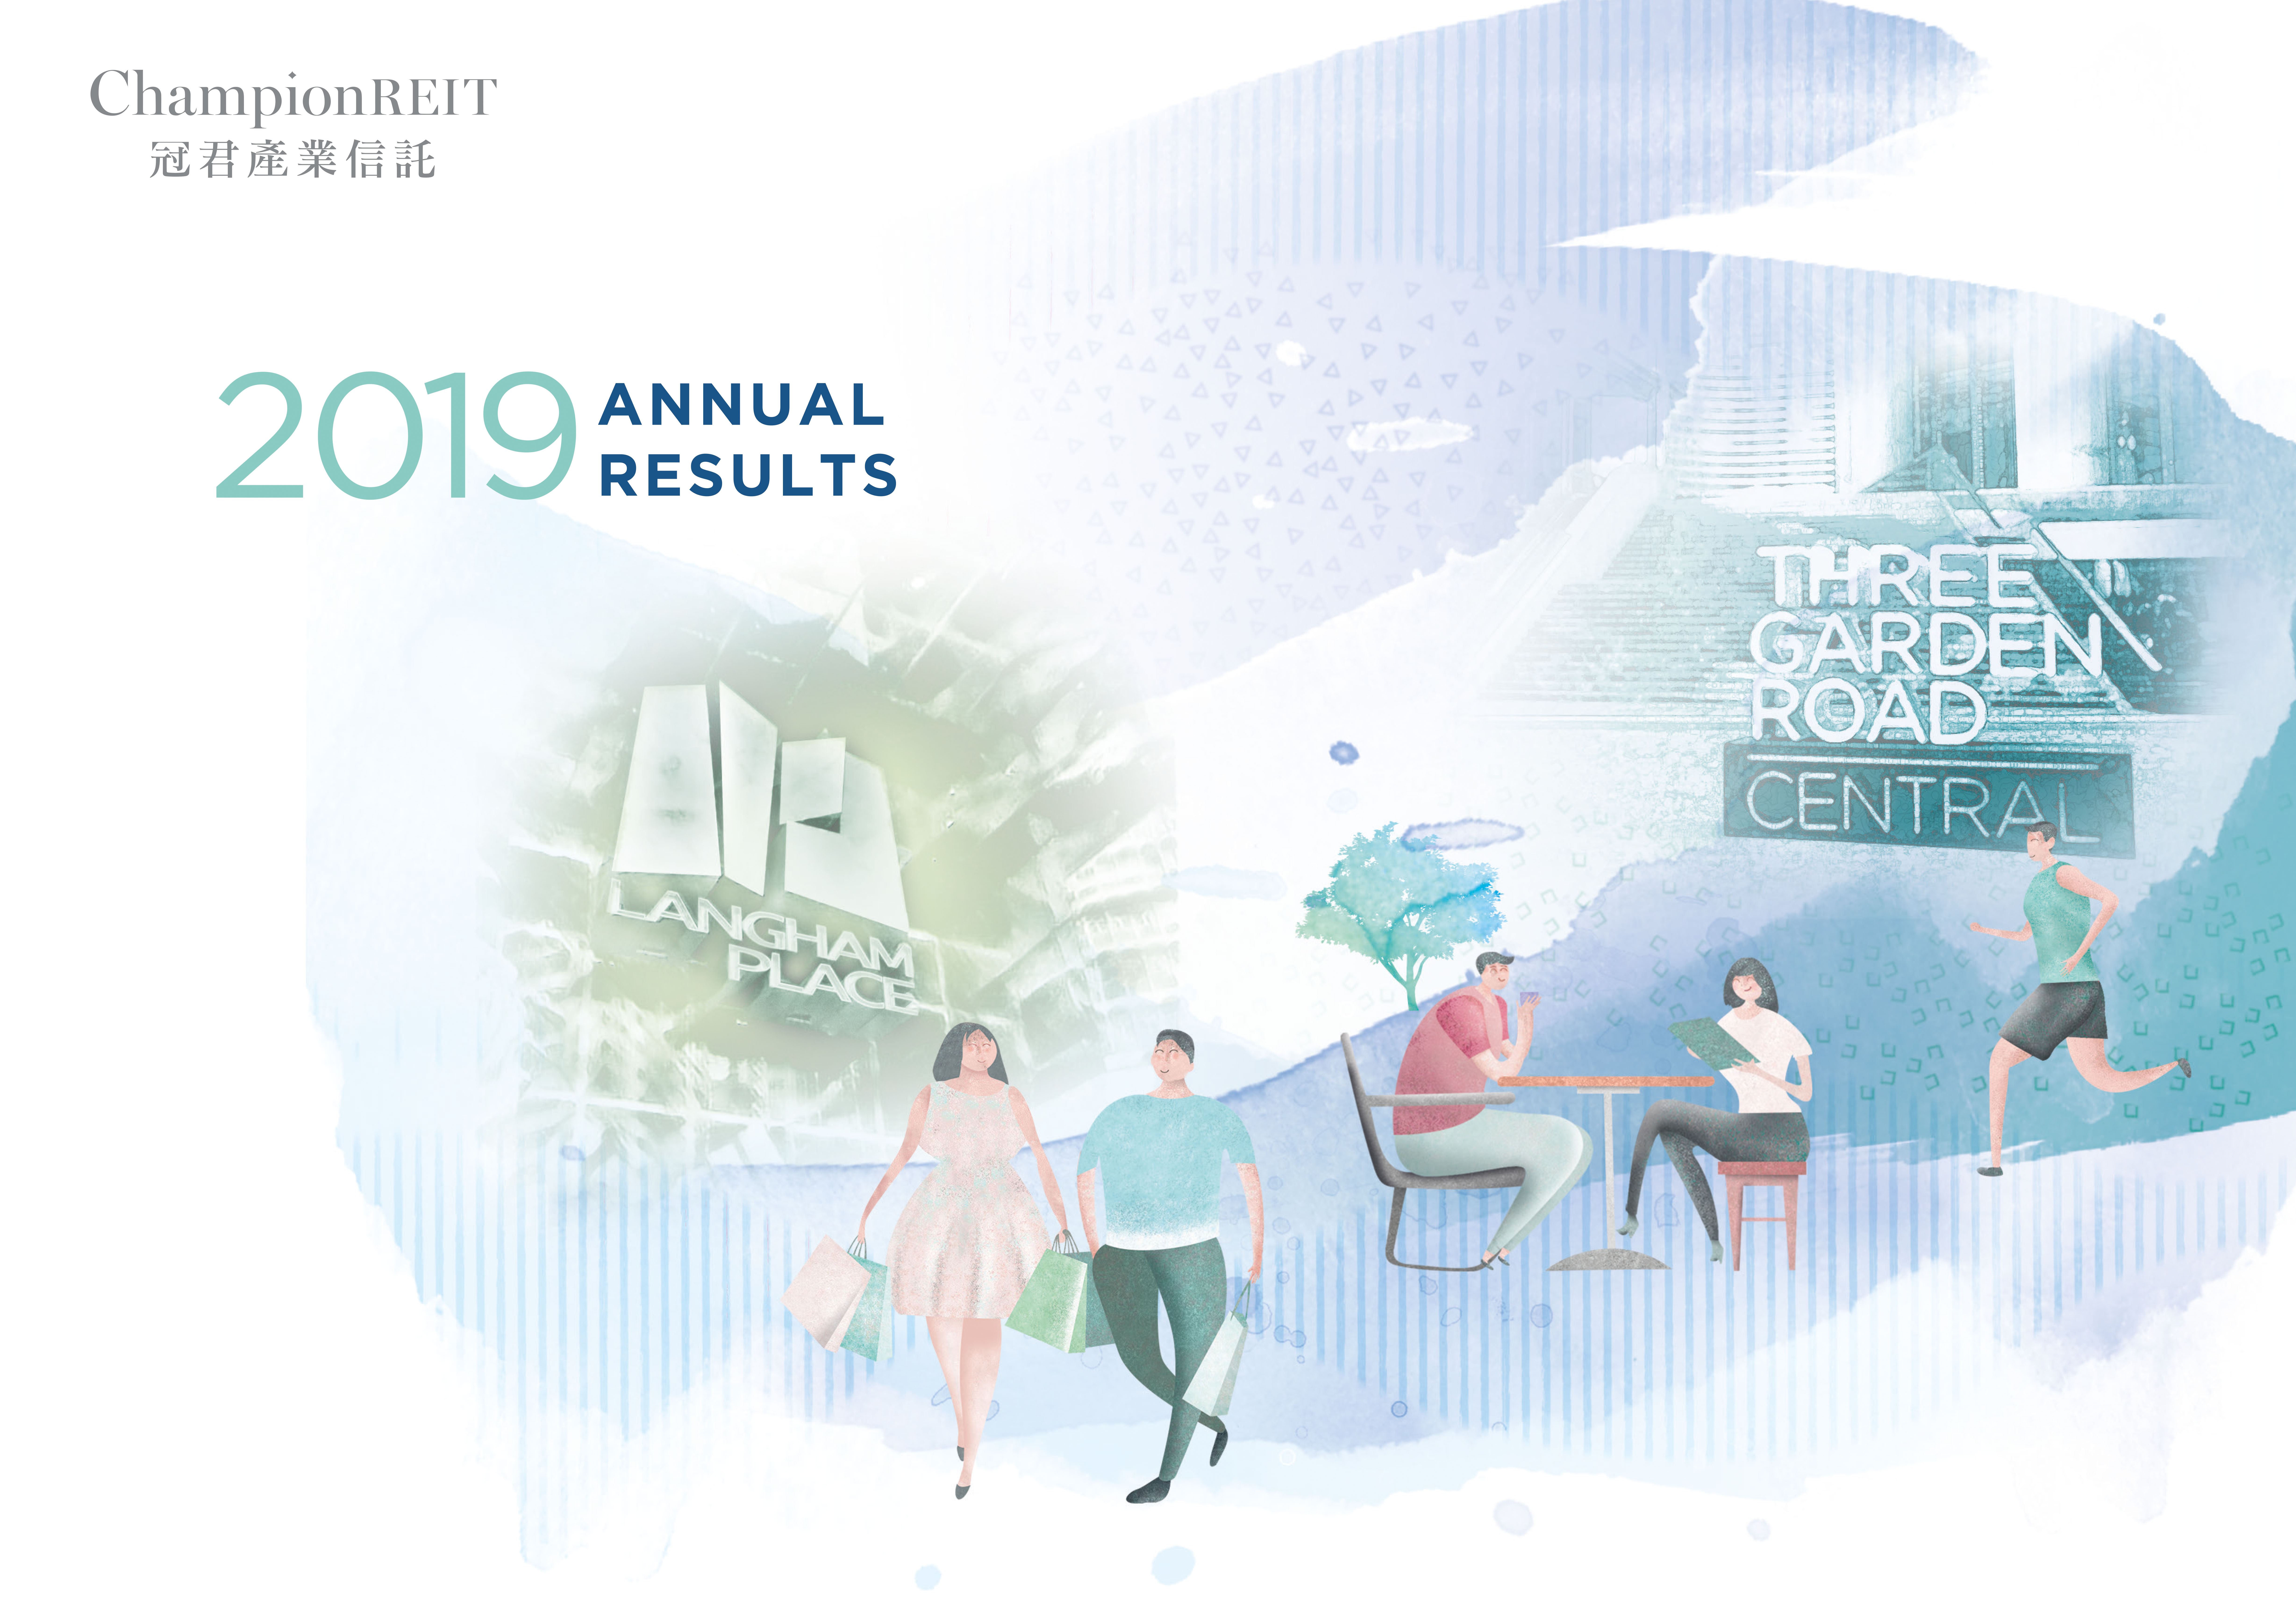 2019 Annual Results